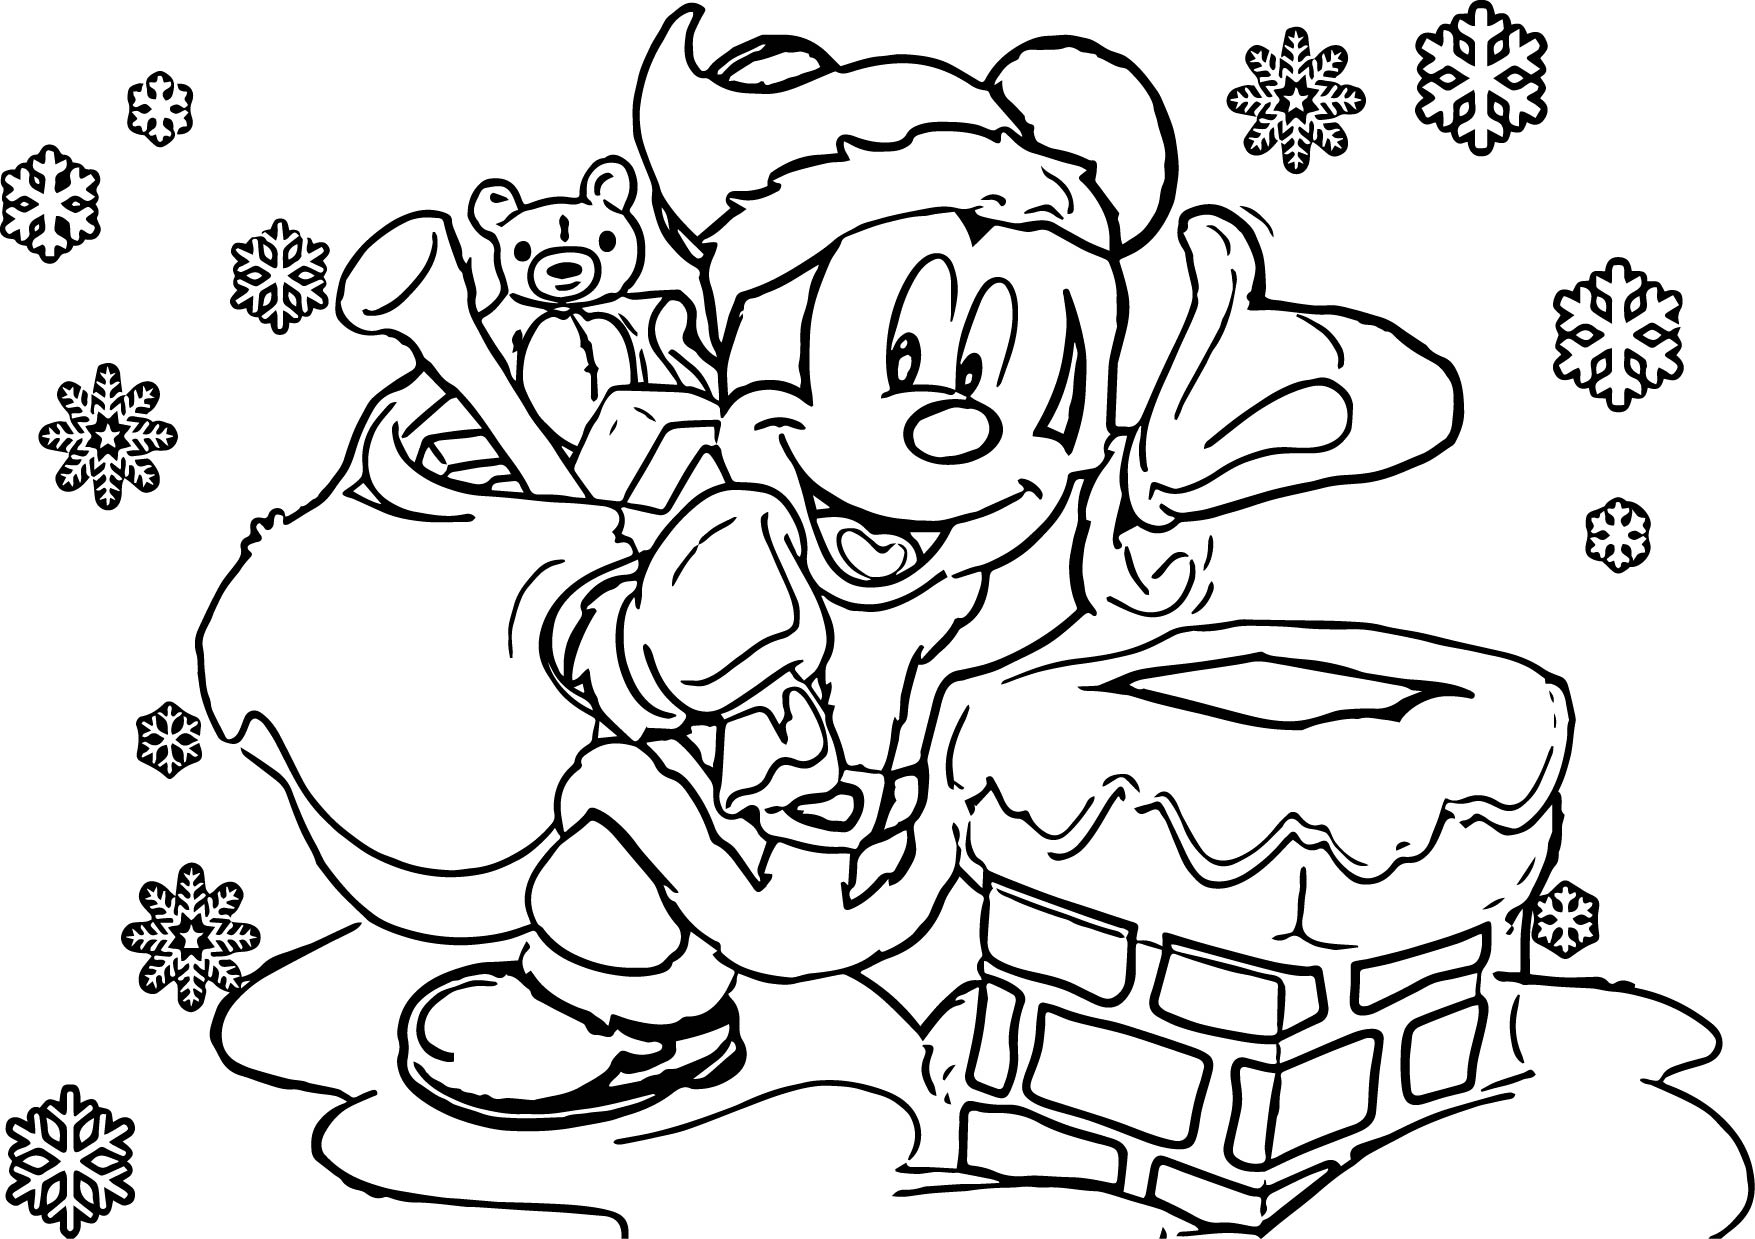 Disney christmas coloring pages for Disney christmas printable coloring pages